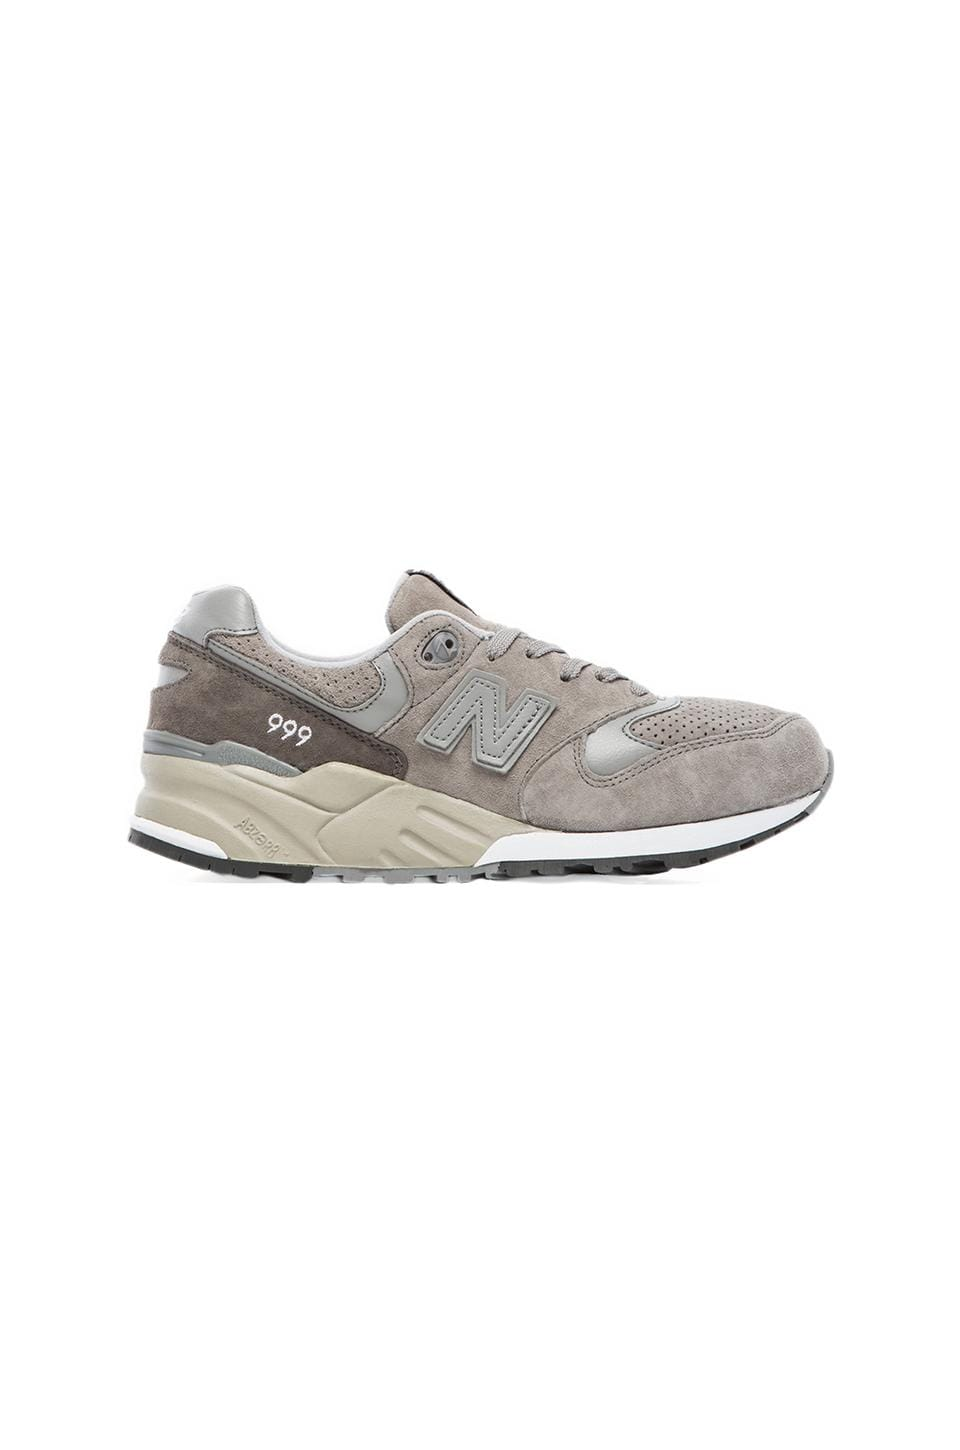 New Balance Made in the USA ML999 in Grey